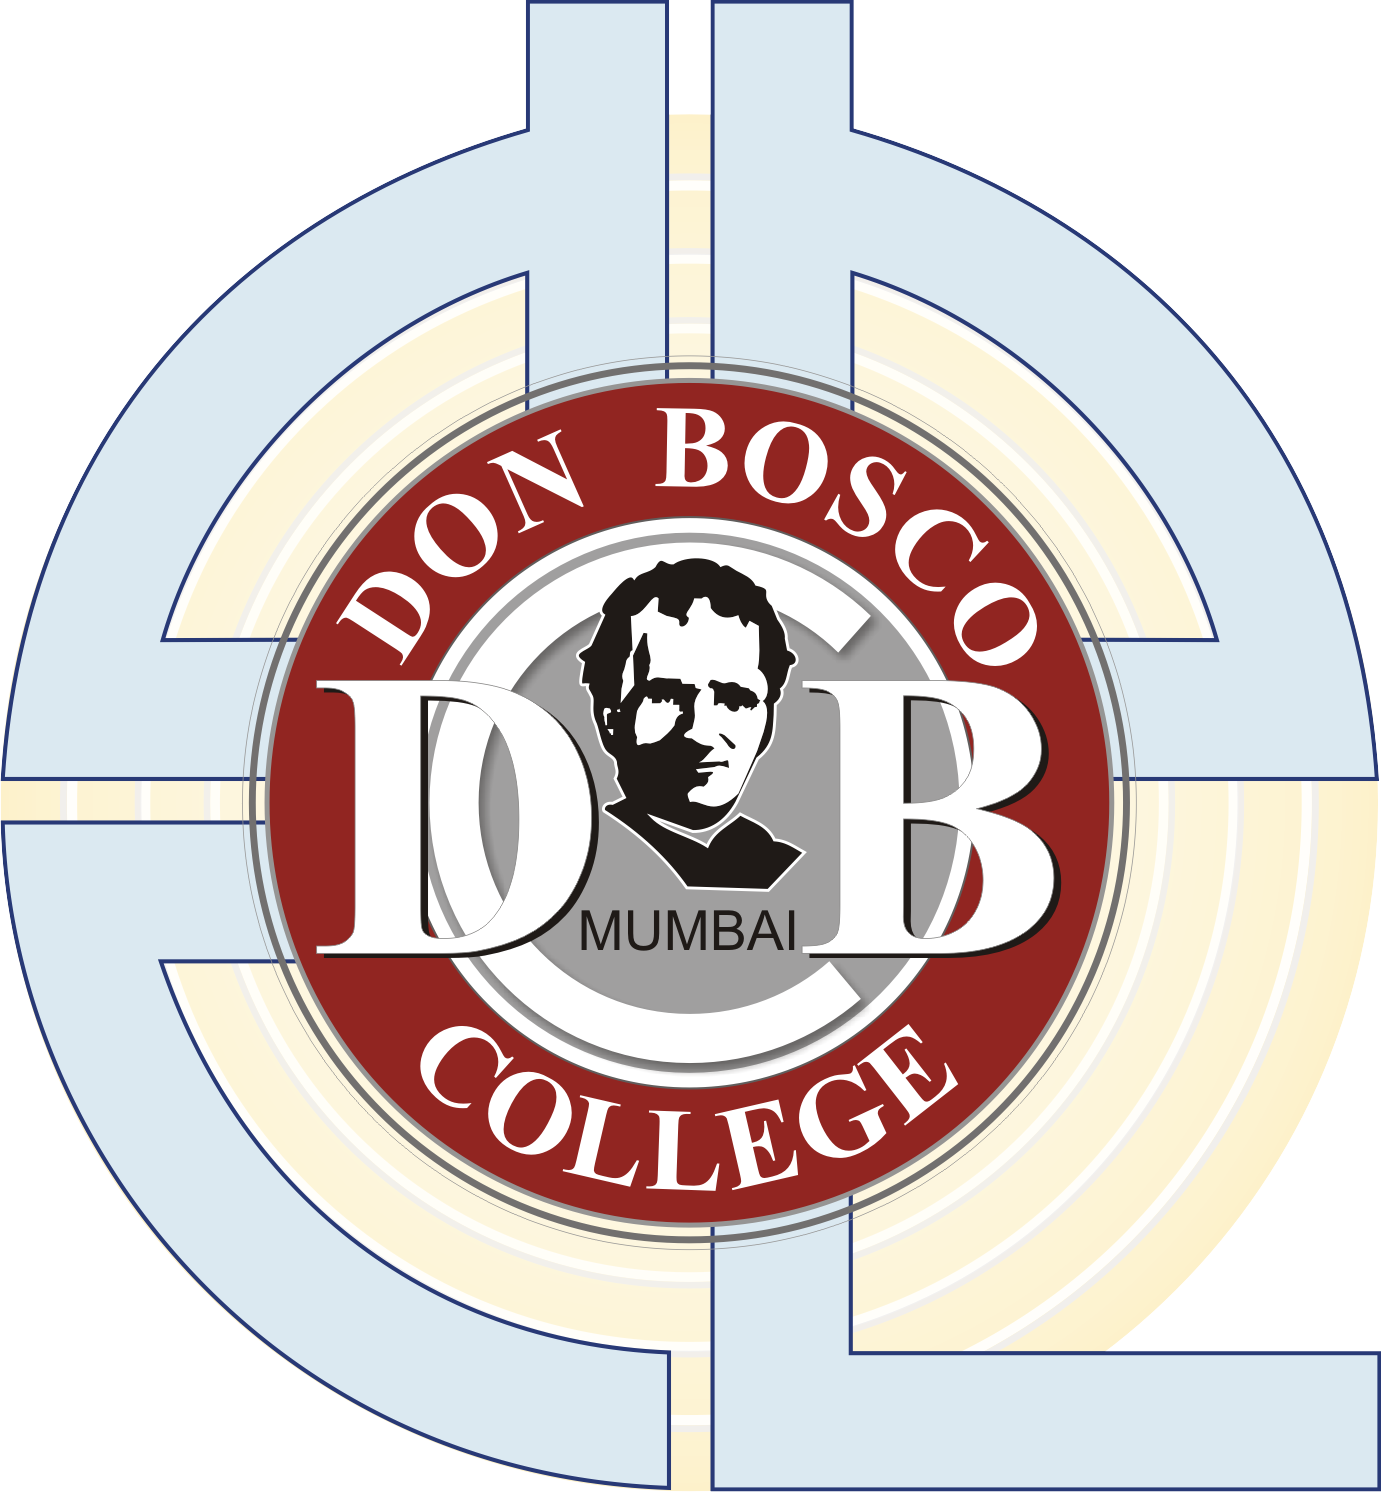 Don Bosco College of Hospitality Studies